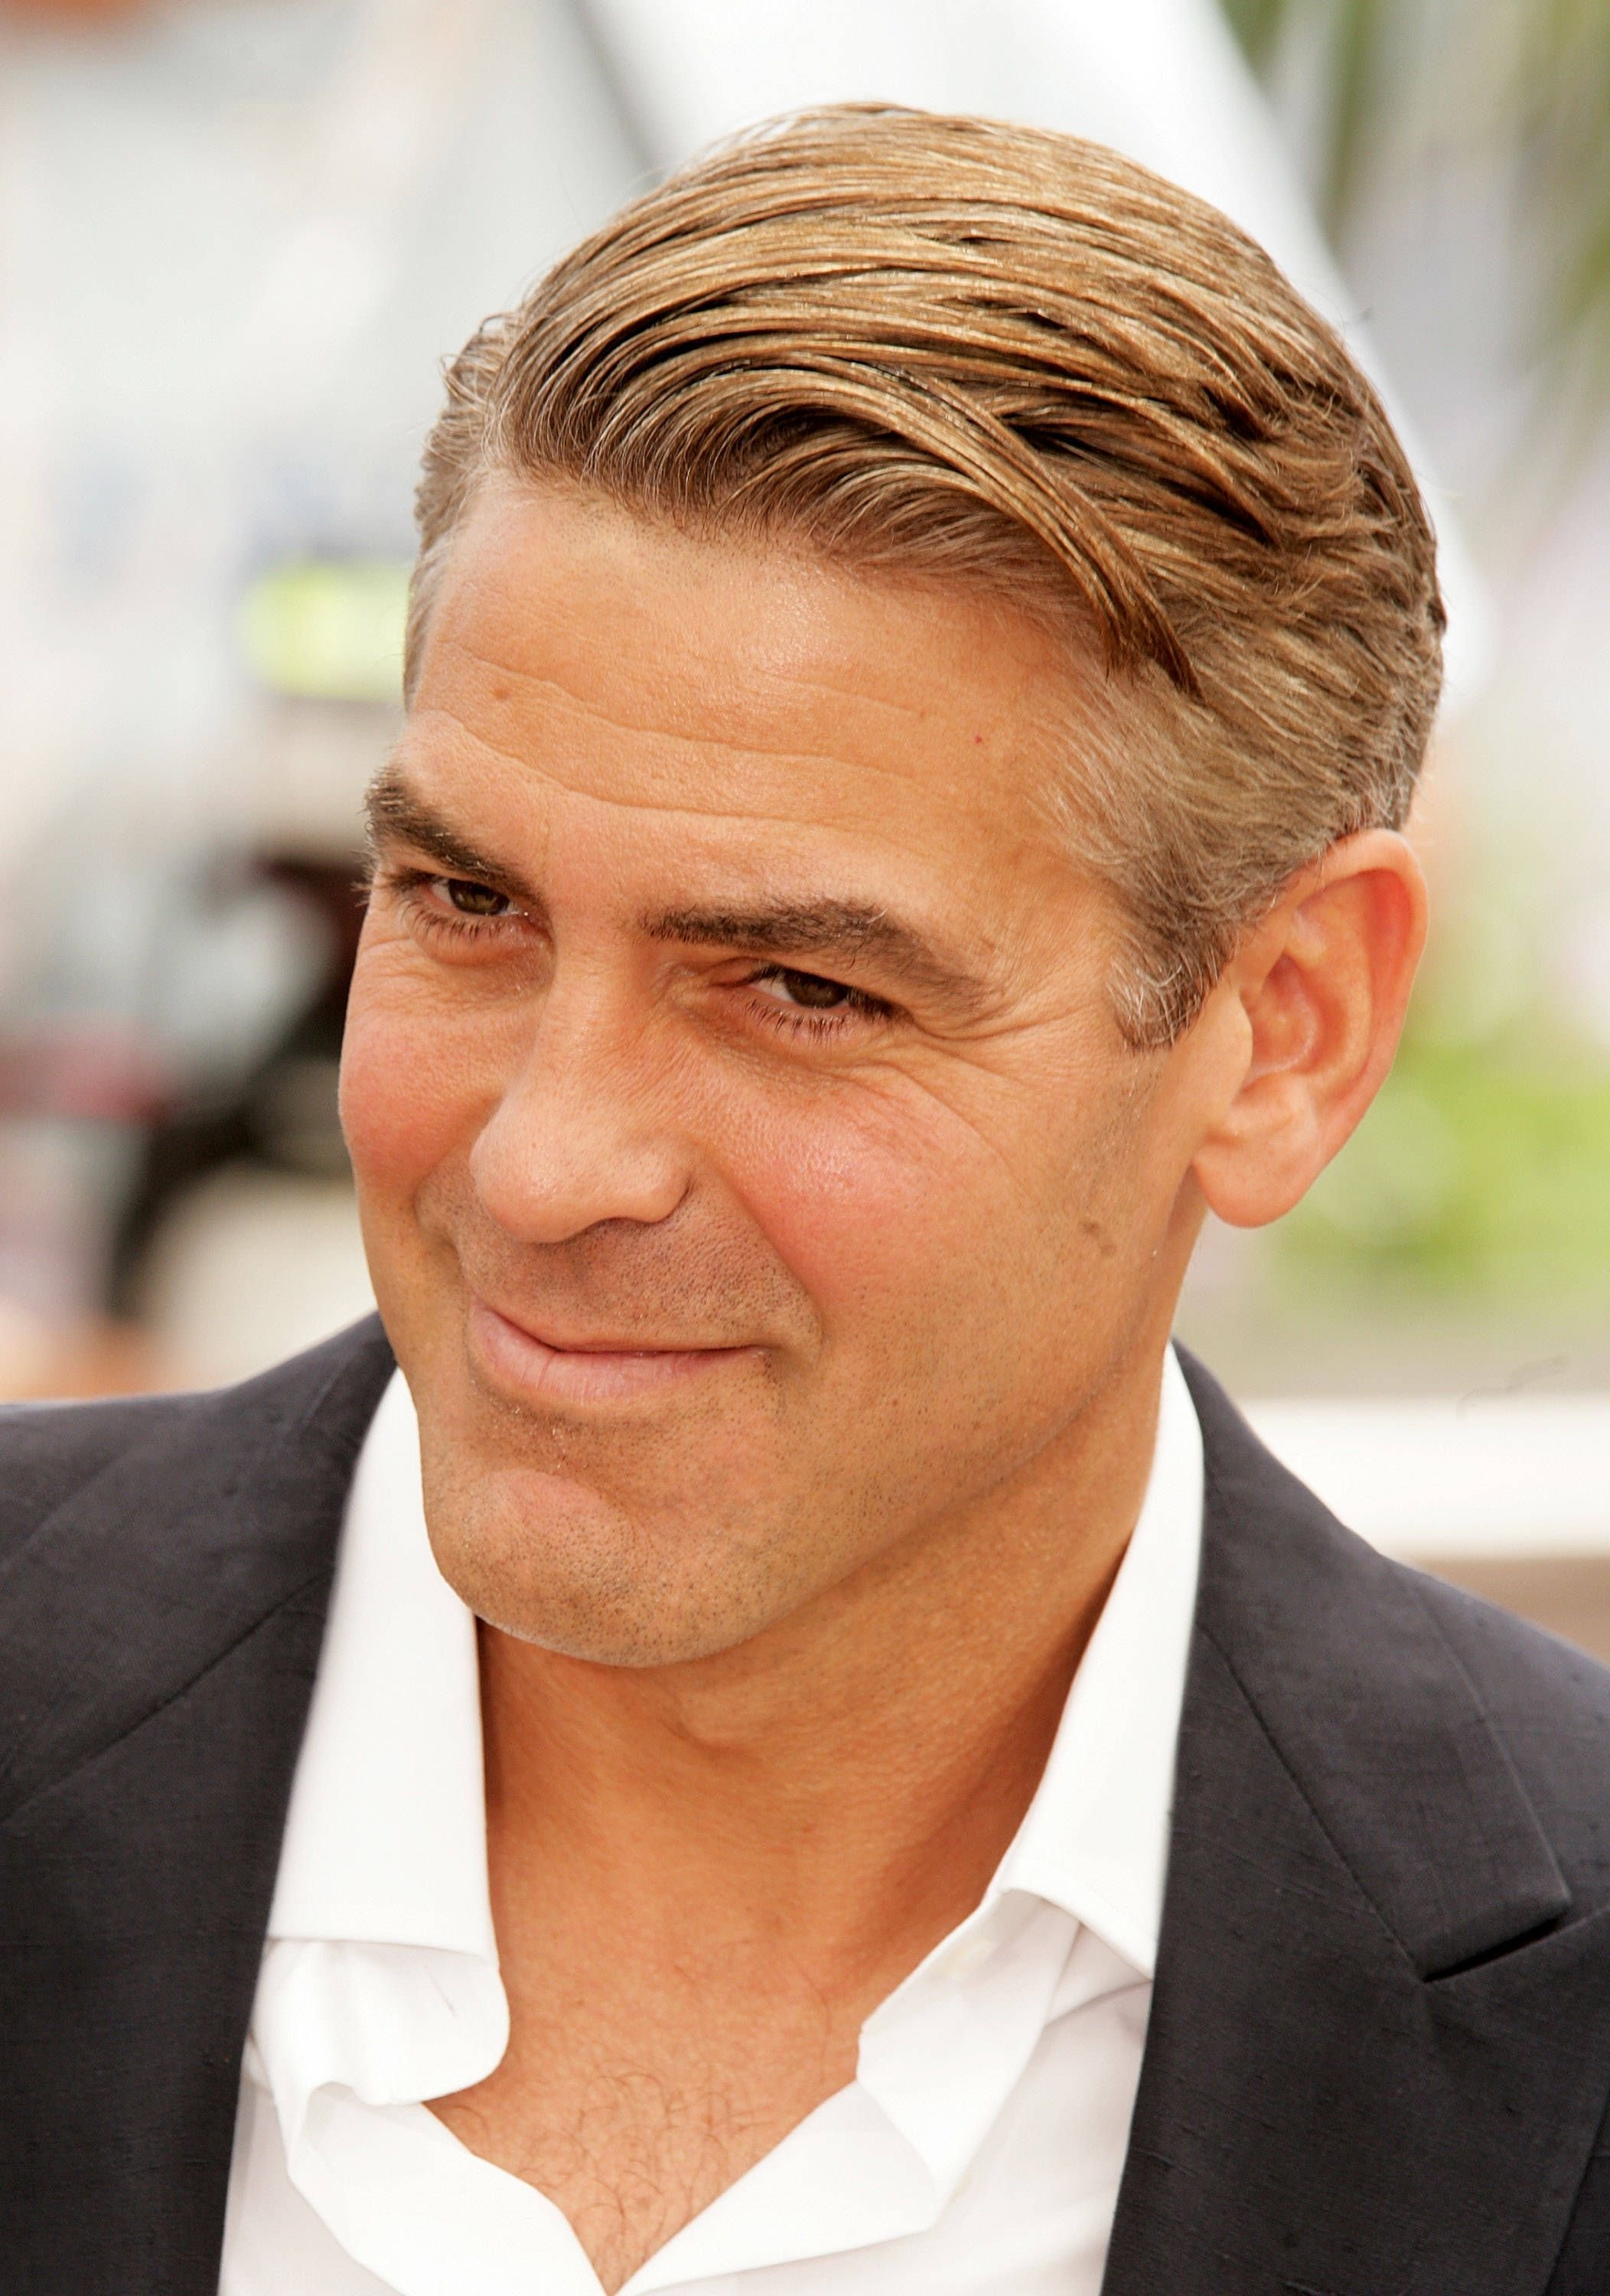 New Best Short Hairstyles For Men Ohtopten Ideas With Pictures